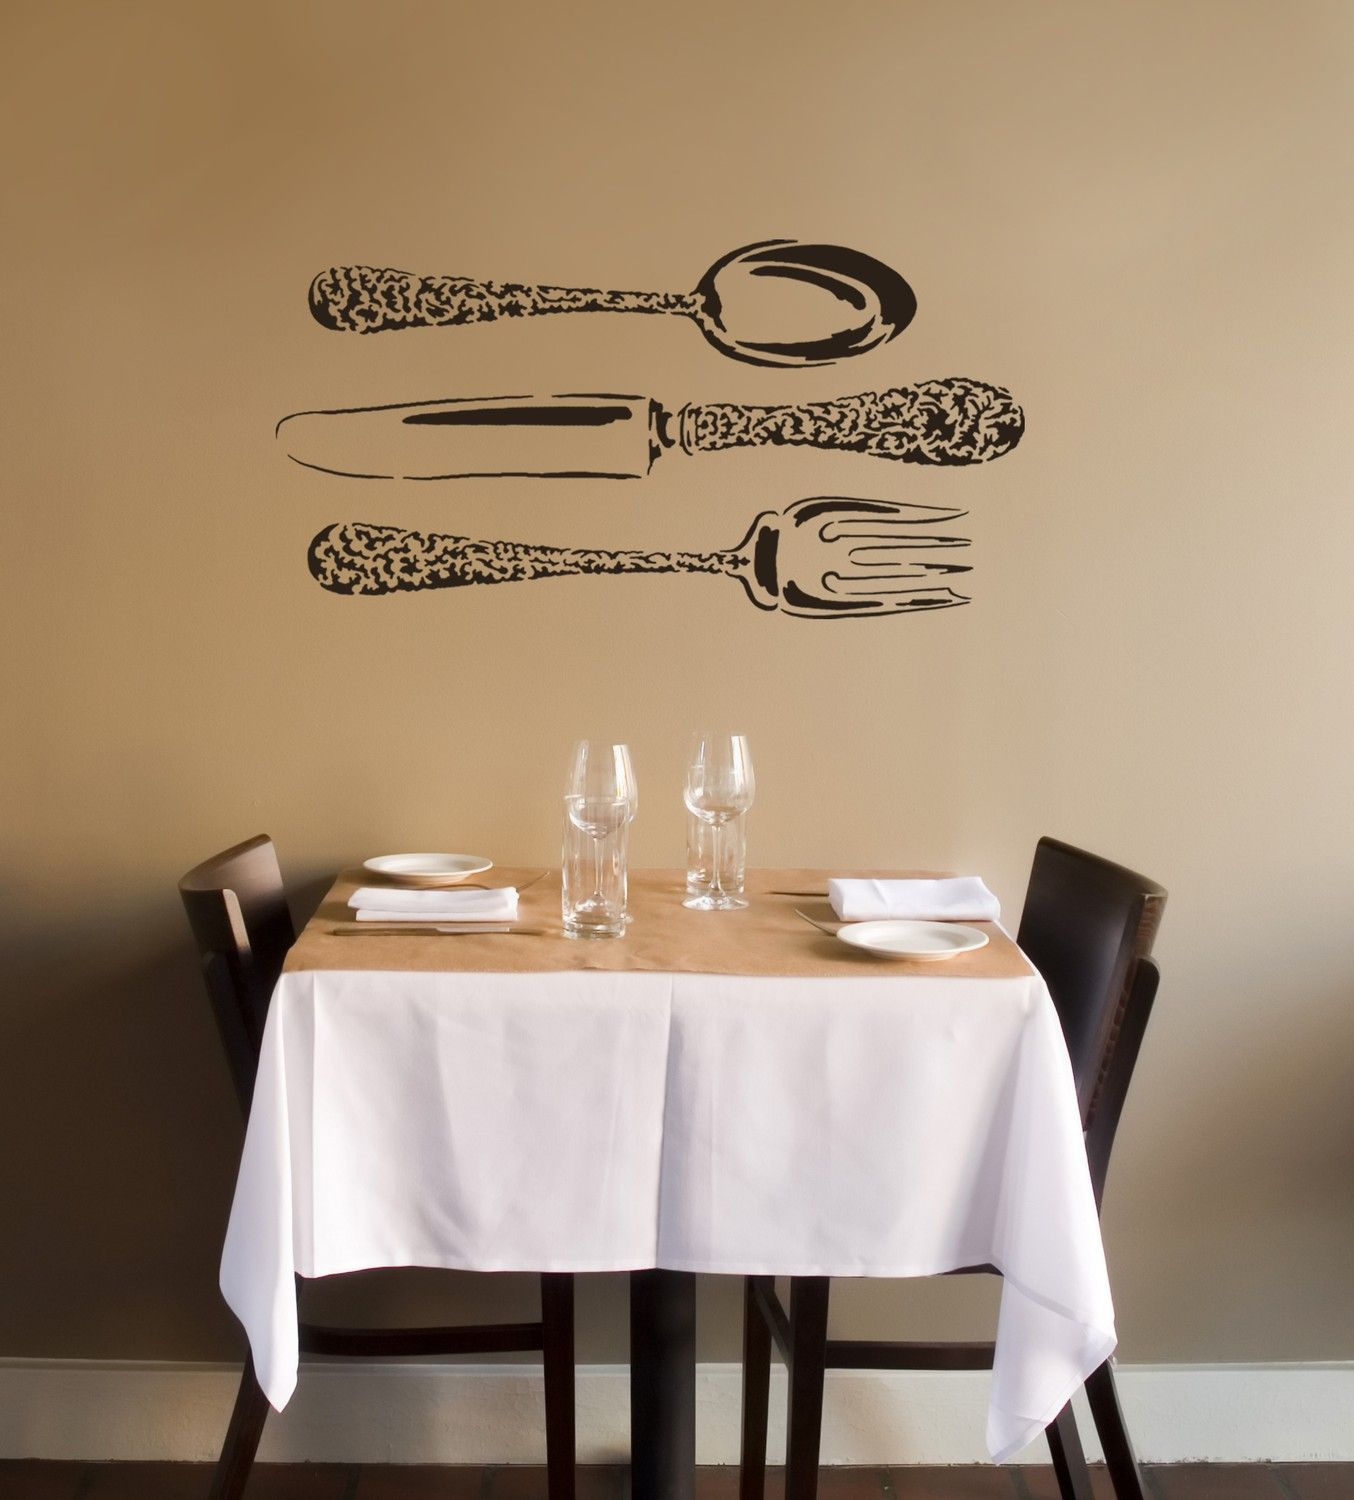 Wall stencil kitchen pinterest wall stenciling walls and stencils reusable wall stencils instead of wall decals large stencils for diy decor amipublicfo Choice Image